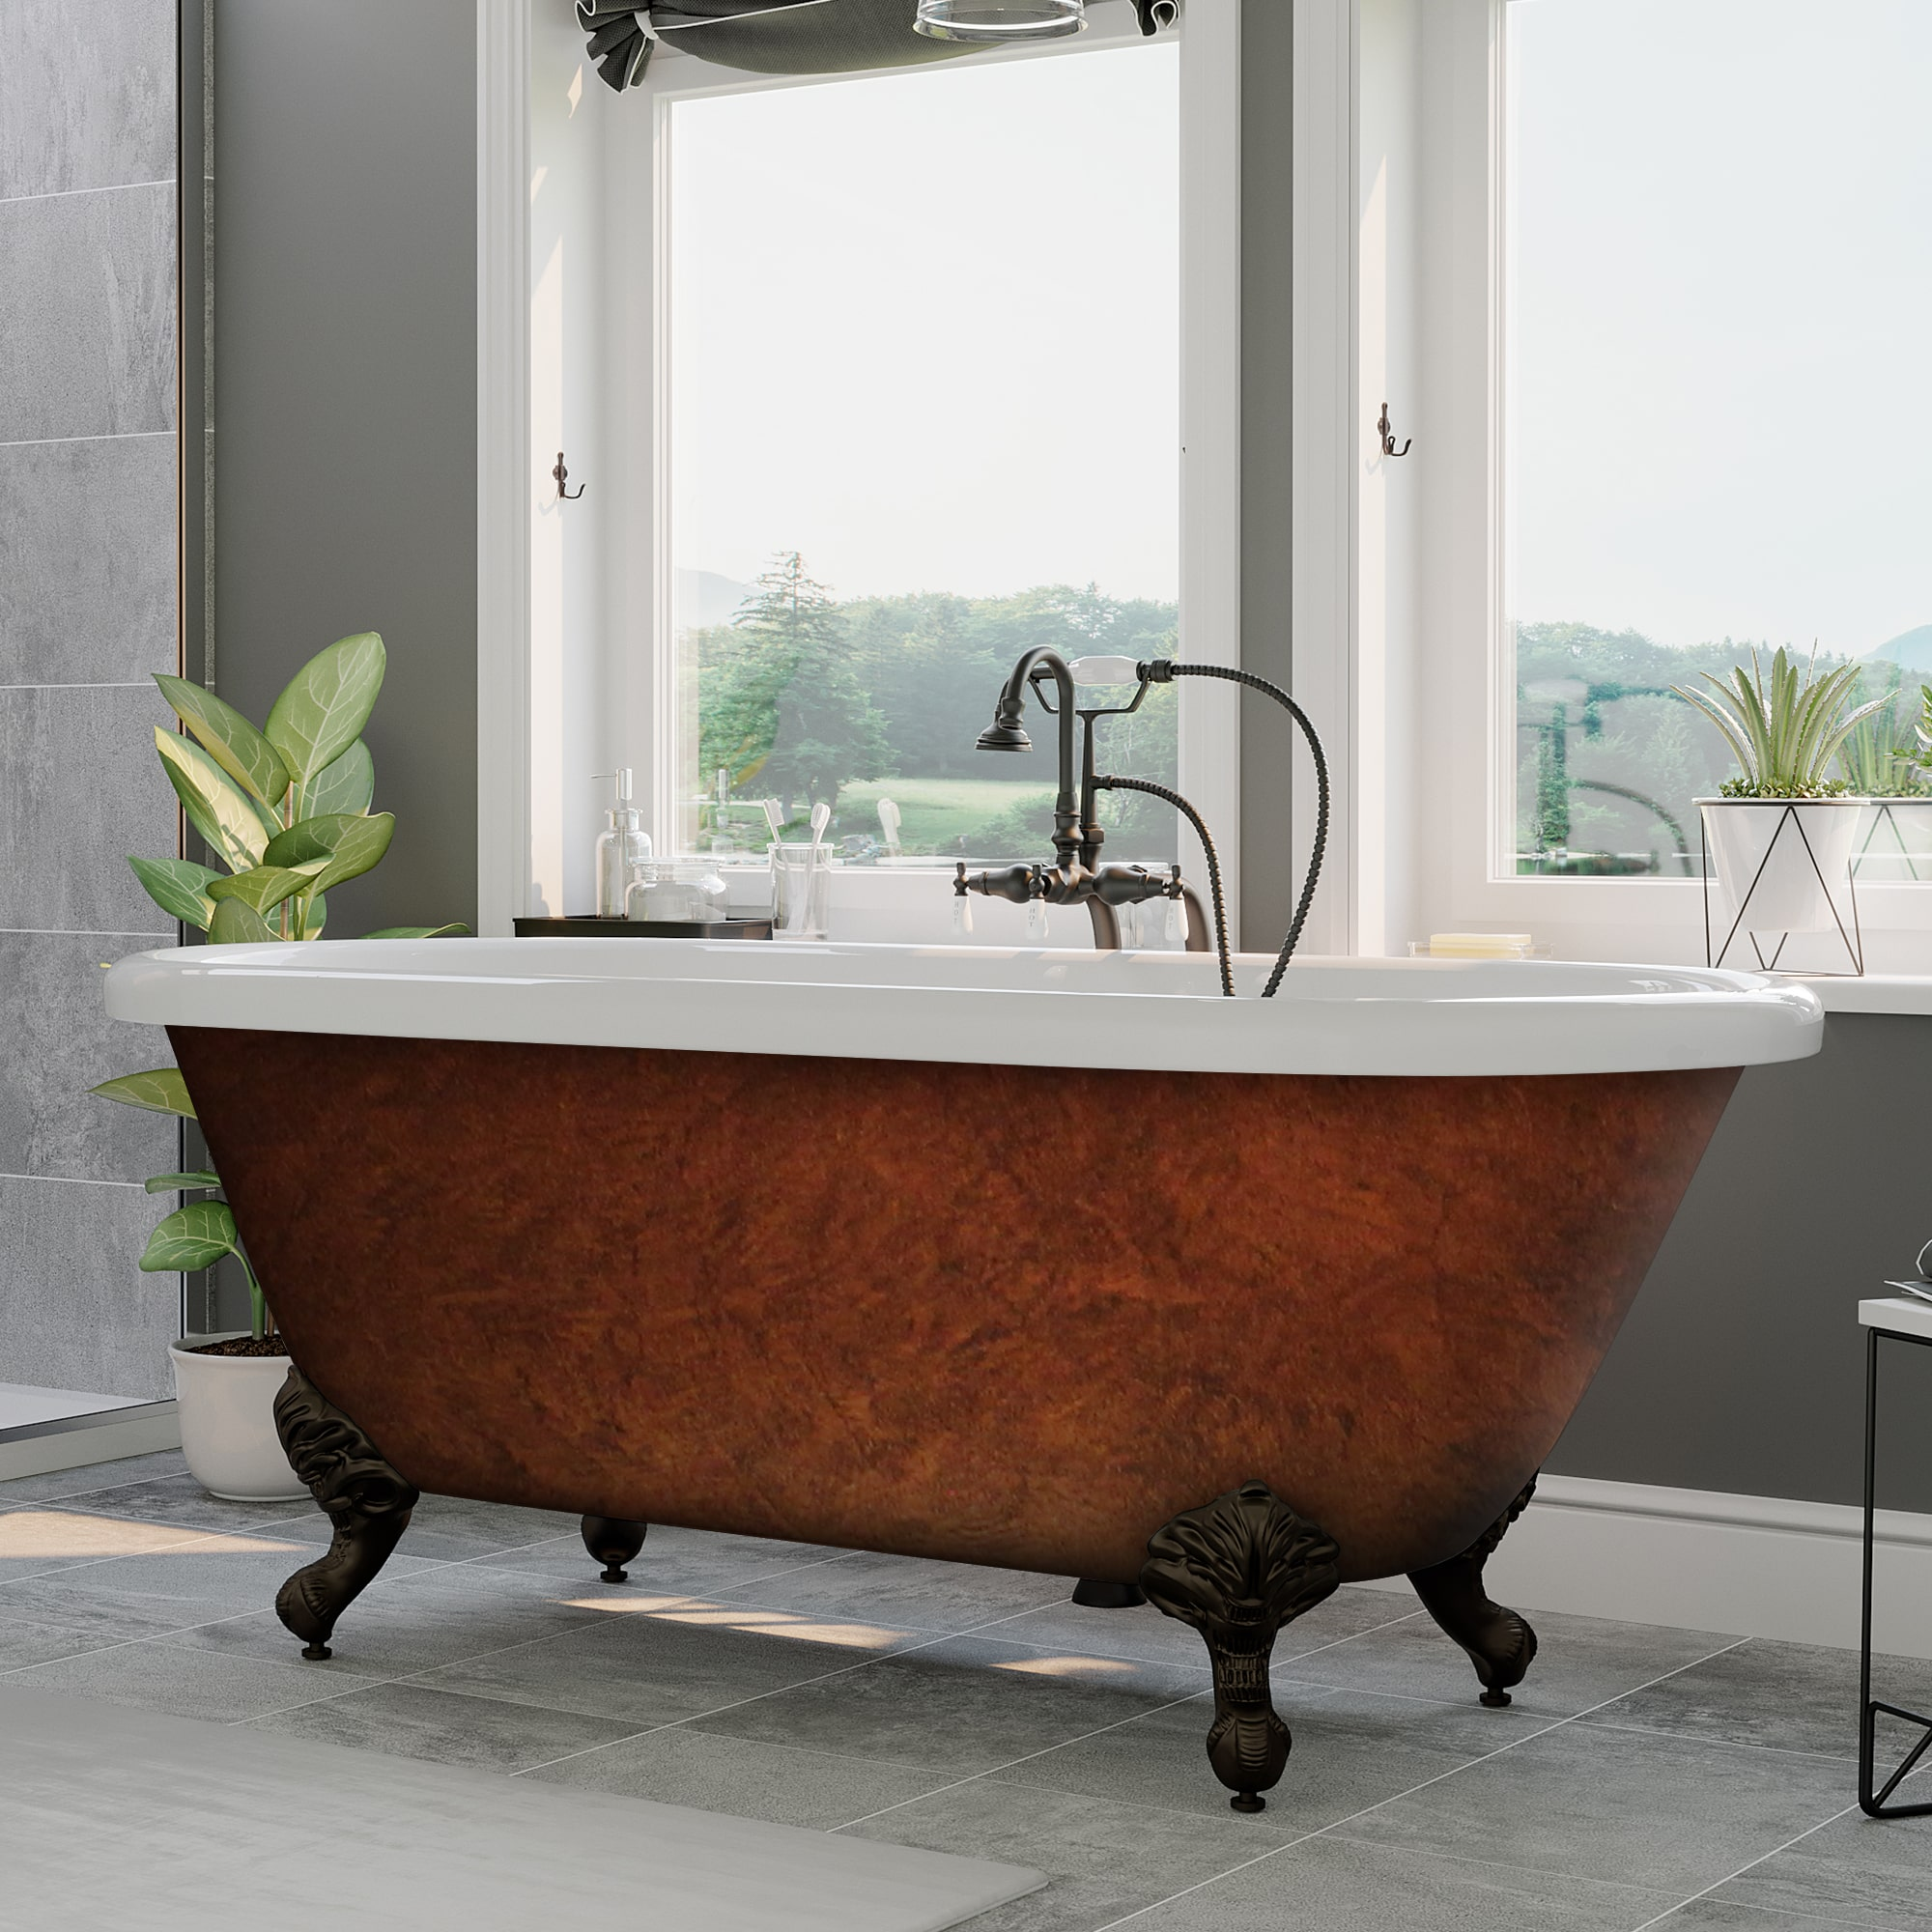 59 Acrylic Double Ended Clawfoot Tub Faux Copper Finish